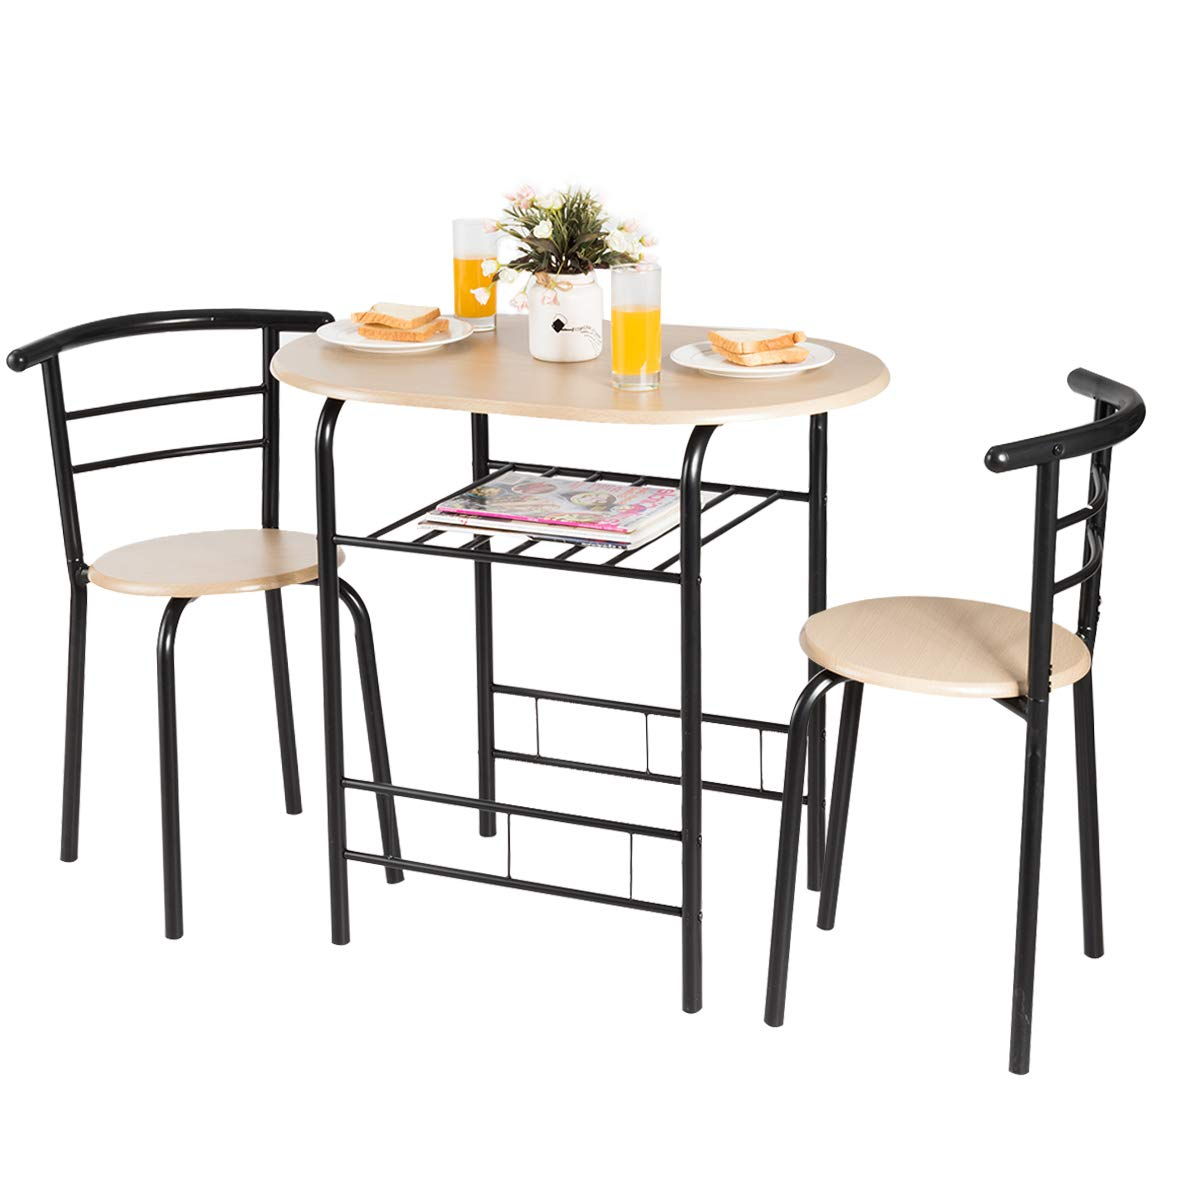 Giantex 3 Piece Dining Set Compact 2 Chairs and Table Set with Metal Frame and Shelf Storage Bistro Pub Breakfast Space Saving for Apartment and Kitchen (Natural & Black)